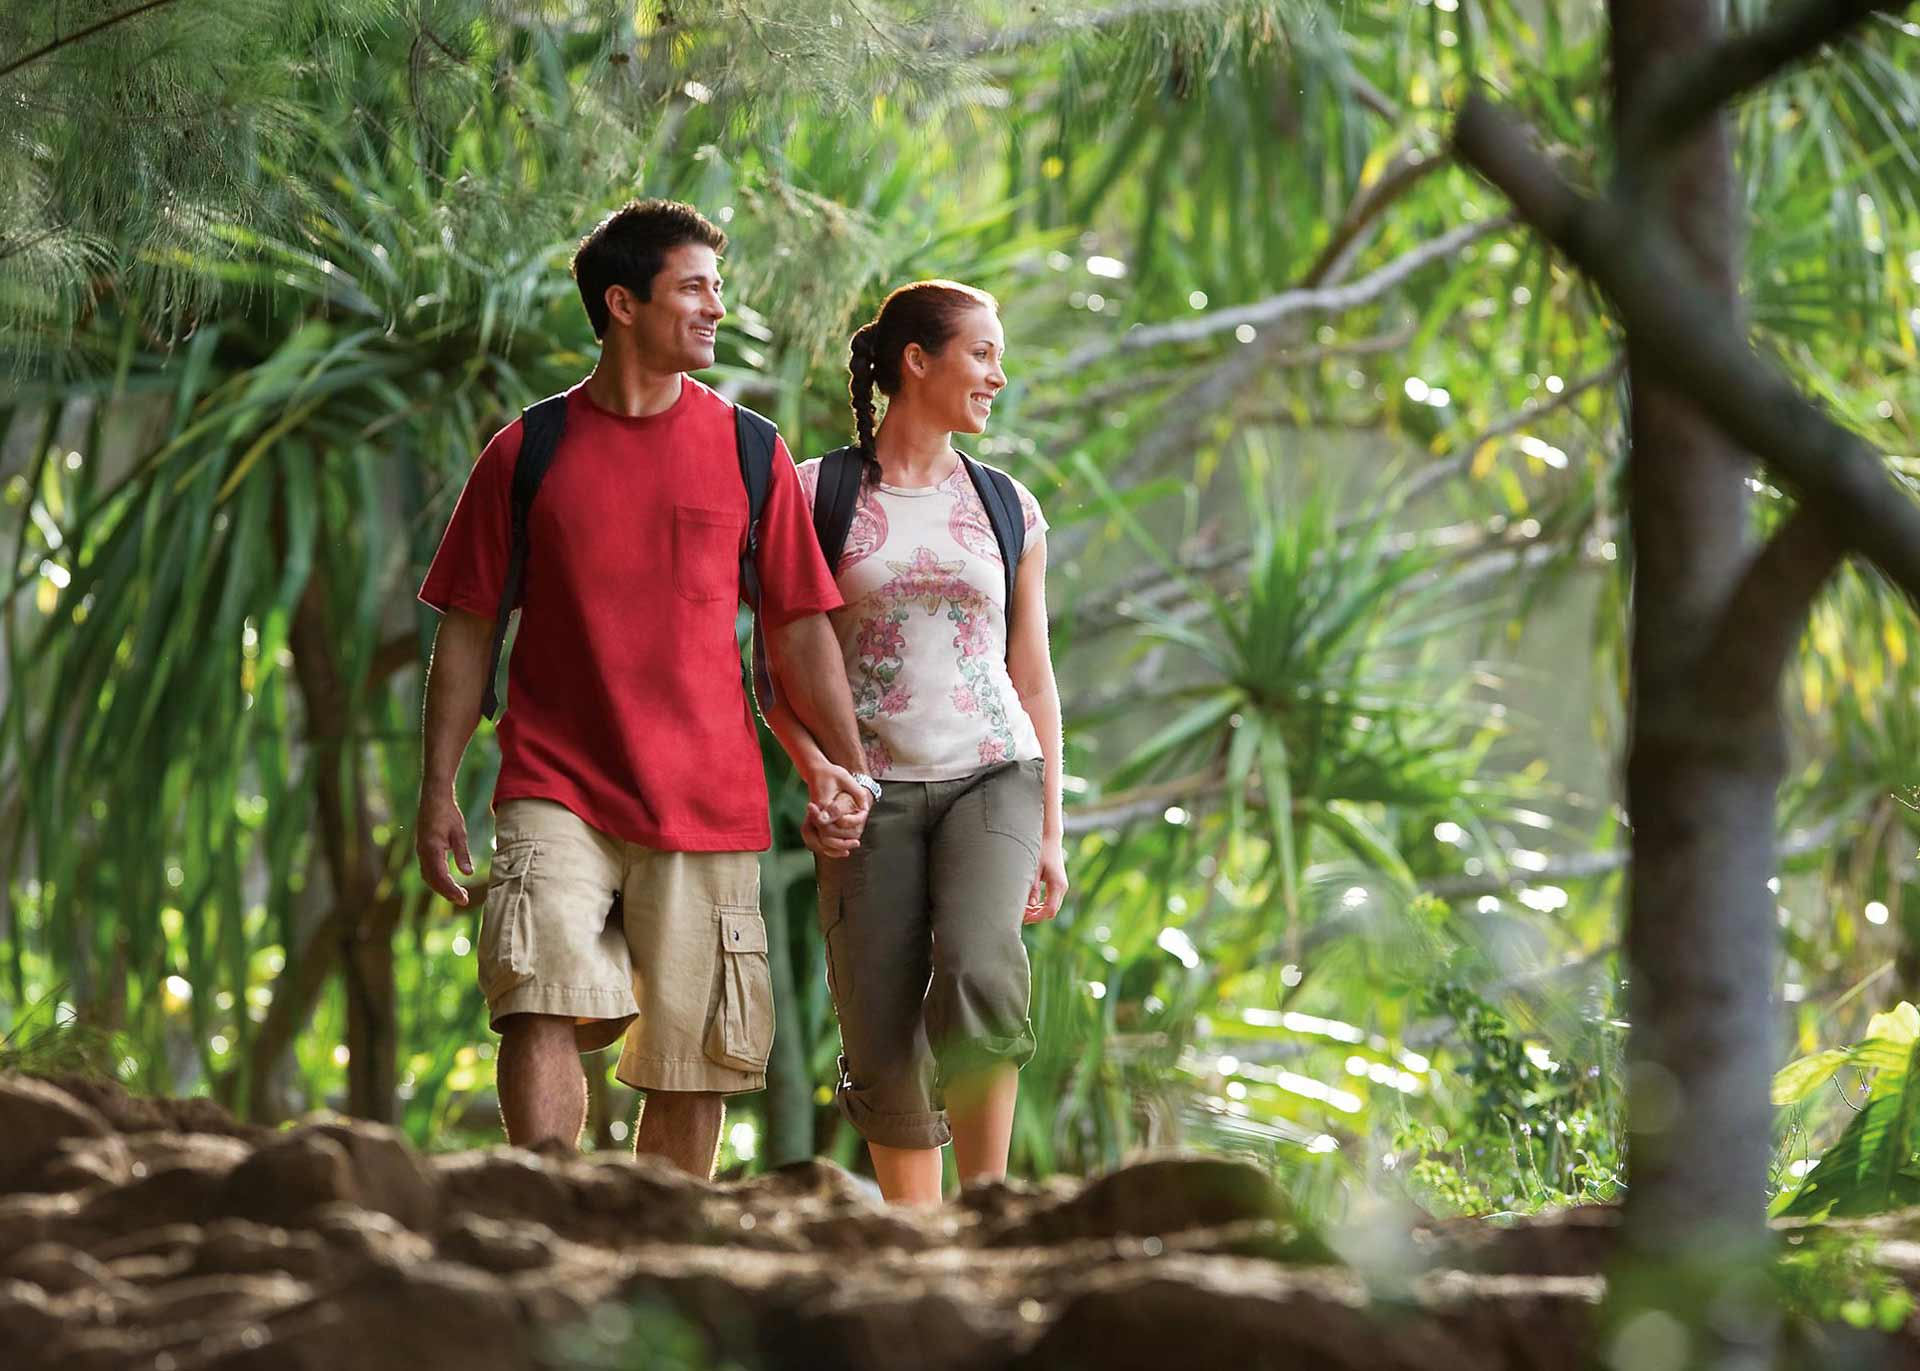 man and woman walking near green leafed trees during daytime